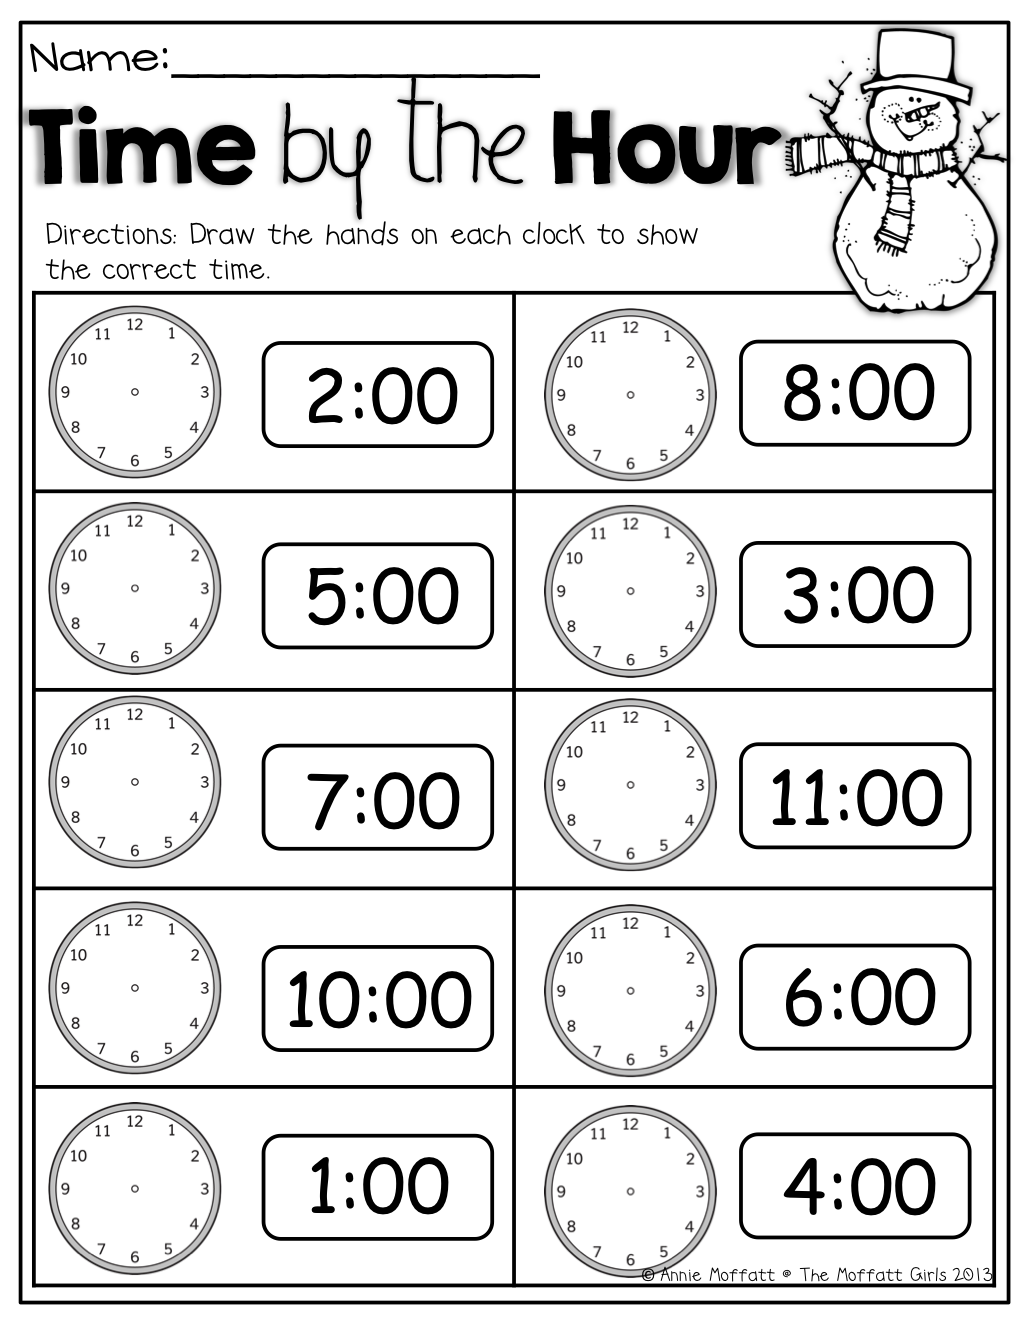 Time Hour The Bytime By The Hour